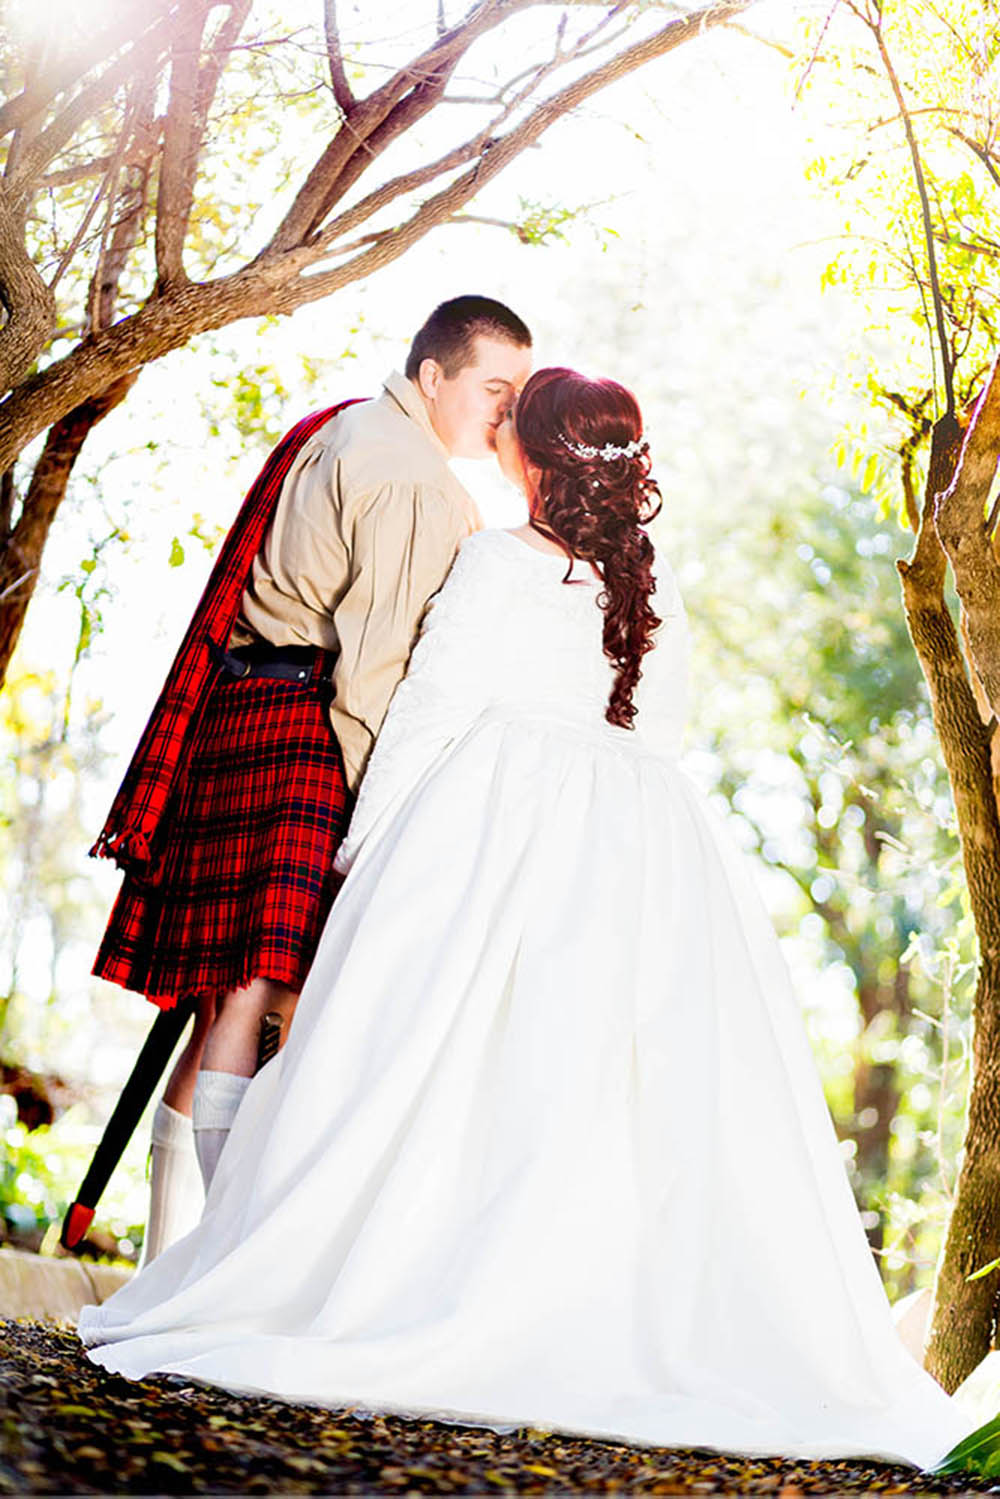 medieval-themed-wedding-medieval-wedding-dgr-photography-castle-wedding-83